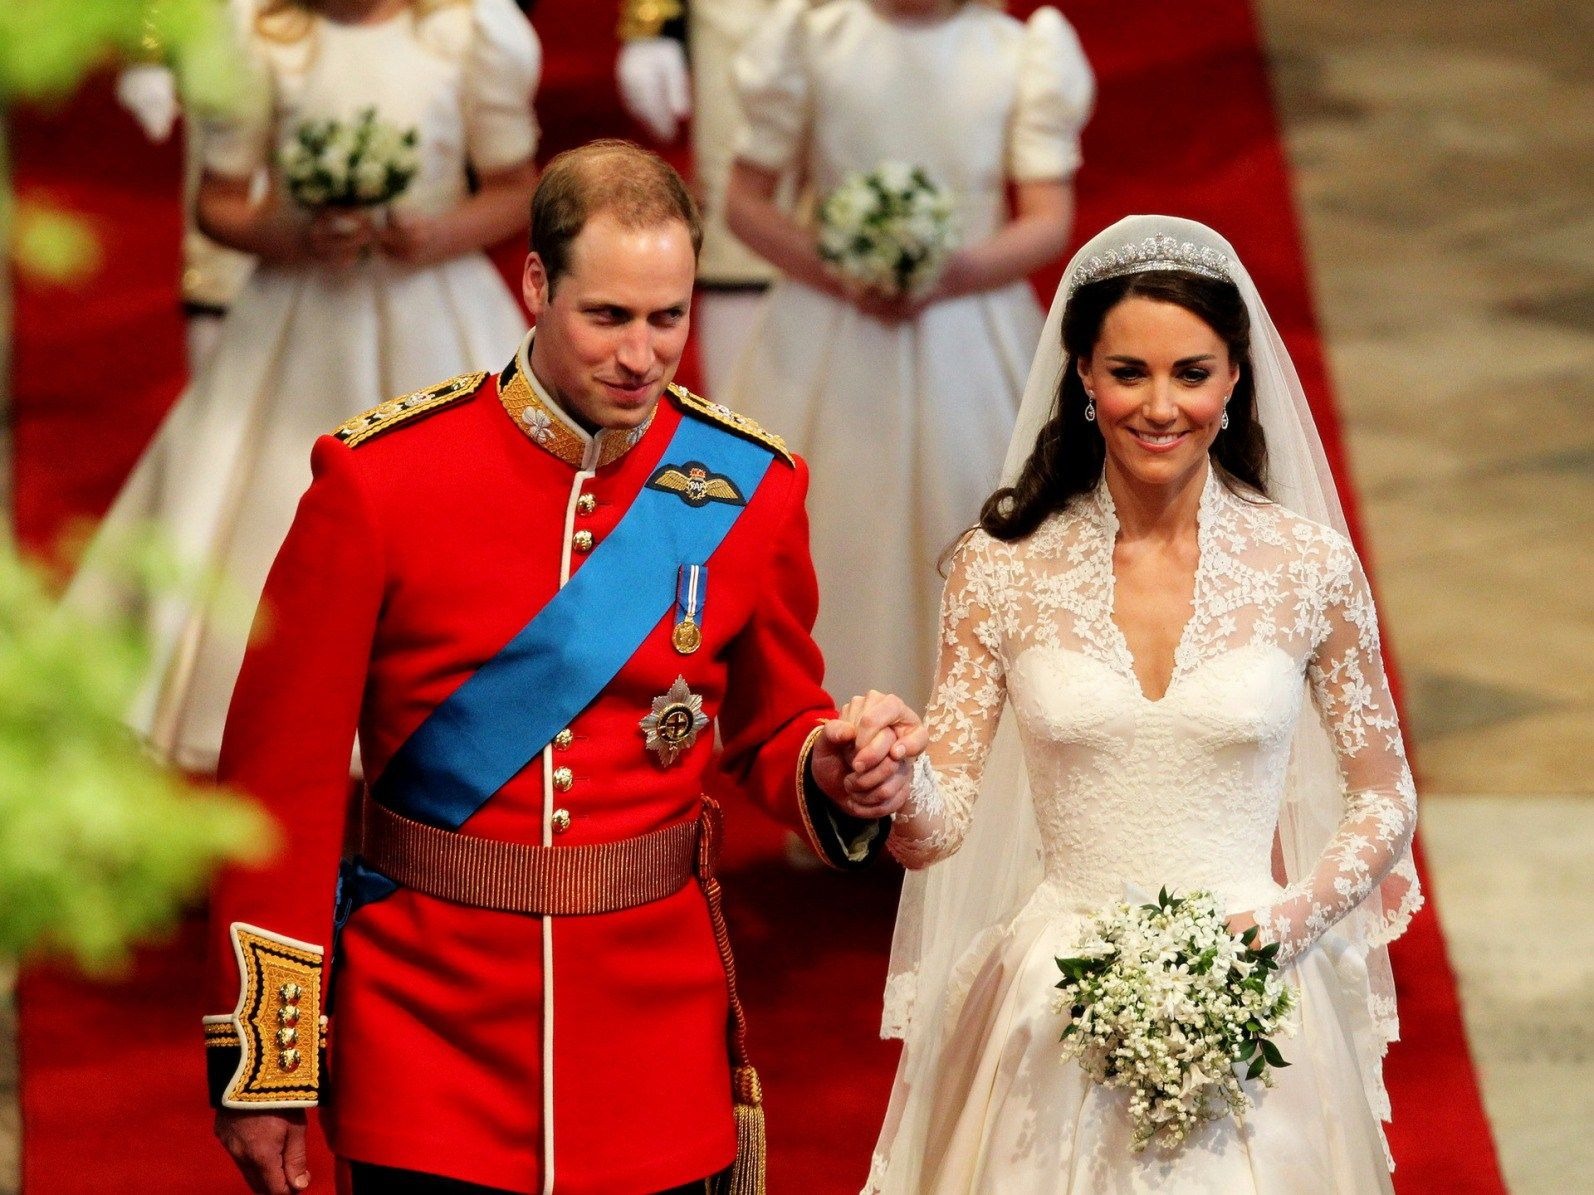 Princess Diana Ghost At Prince William S Wedding.Princess Diana Ghost At Prince William S Wedding Google Search